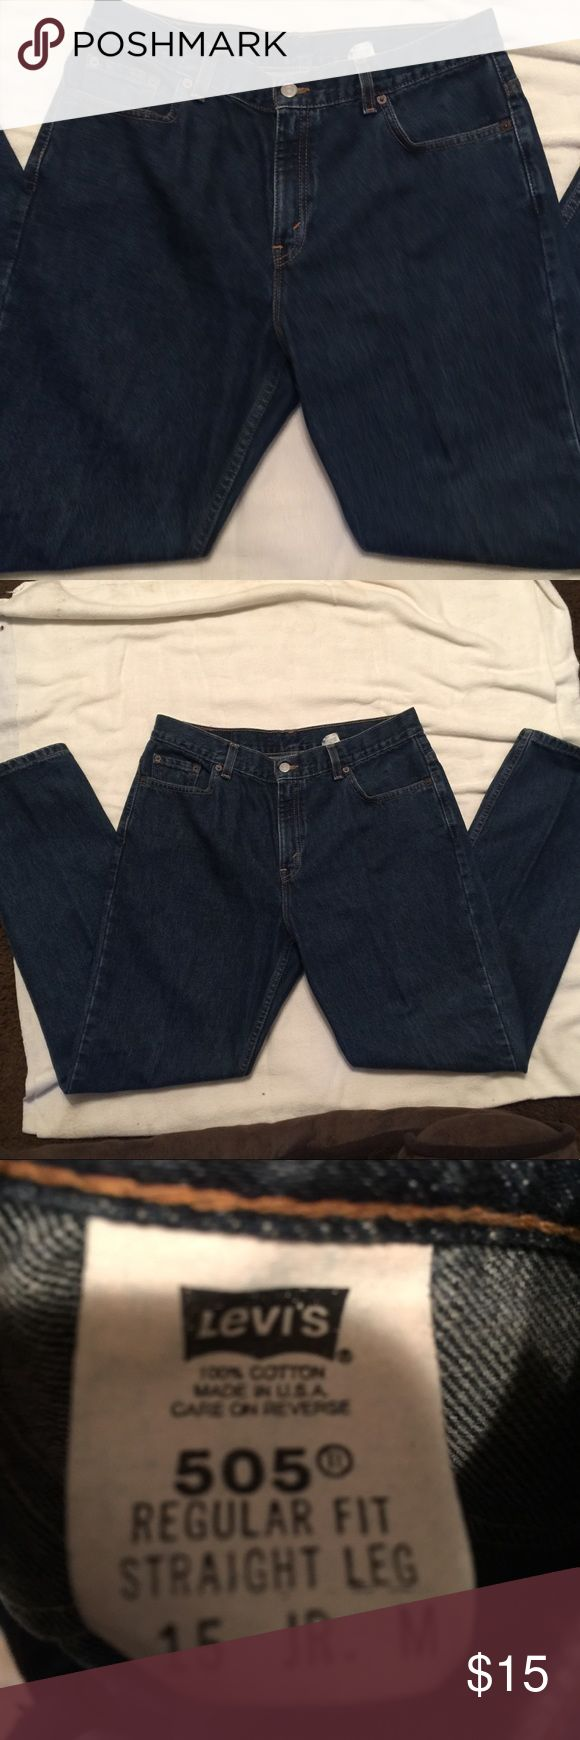 Levi 505 Jeans 👖 Levi 505 Jeans 👖  Excellent condition. Juniors Size 15  ❌🚫No Low Ball Offers Considered Levi's Jeans Straight Leg